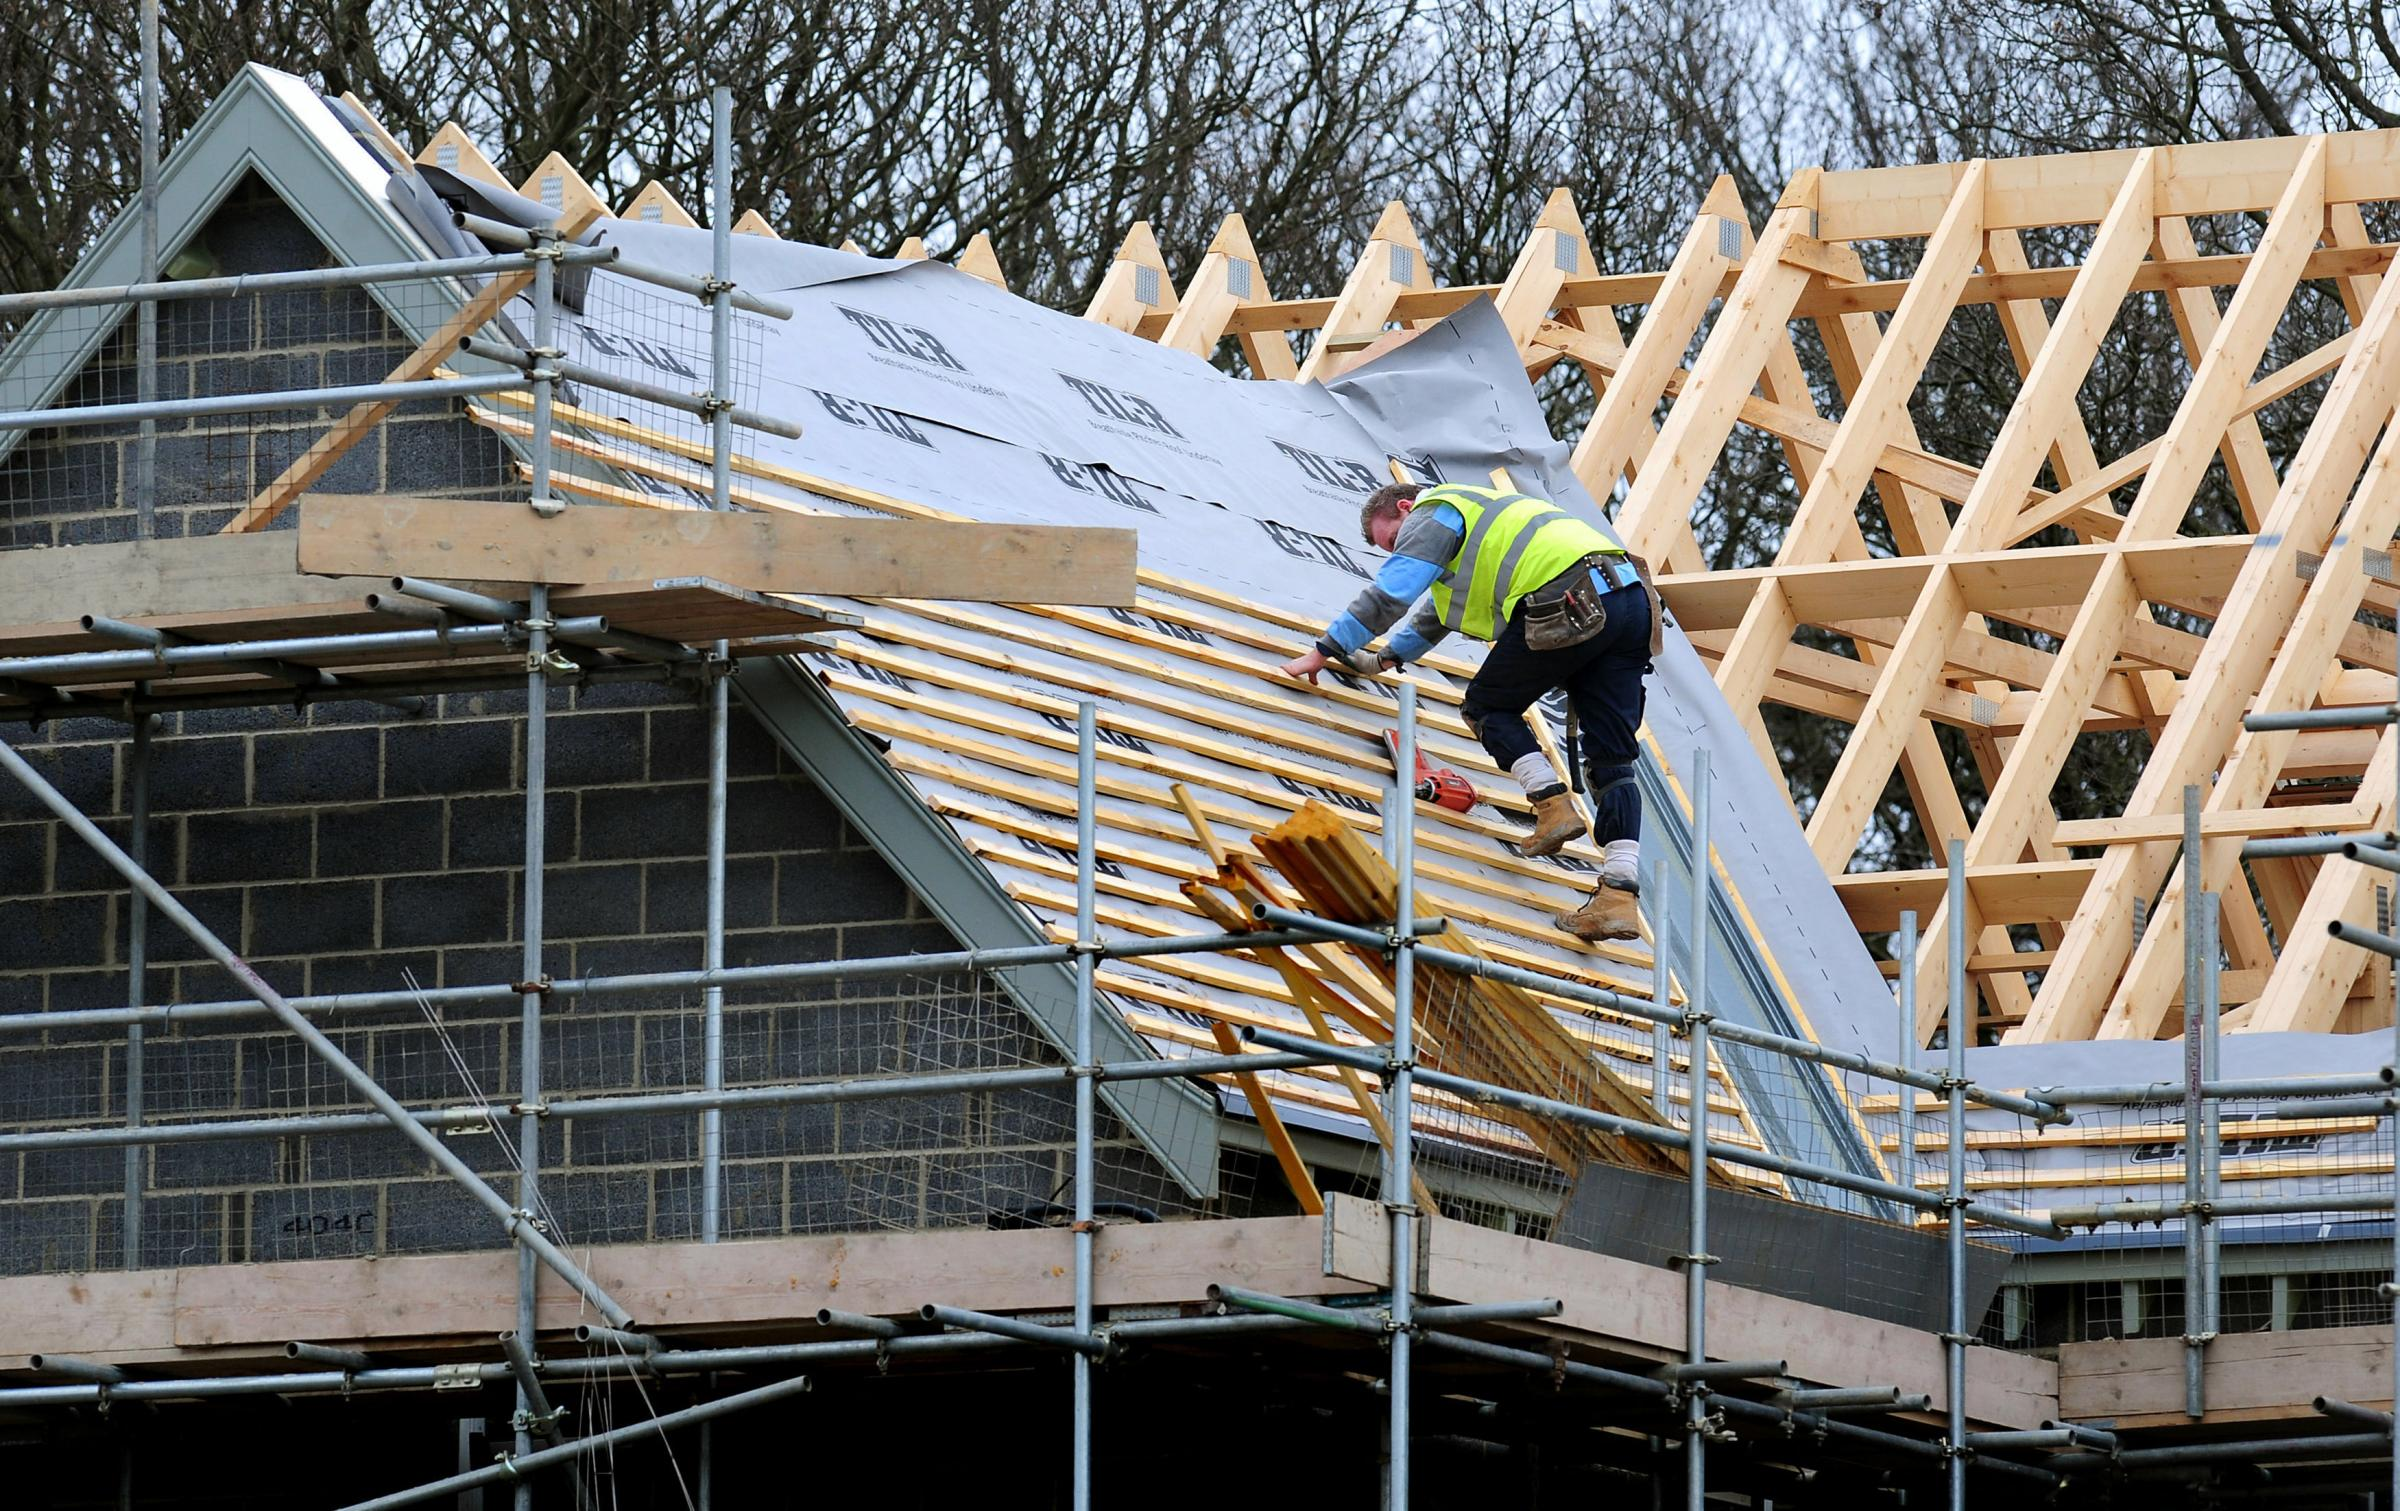 BUILDING AGAIN: New housing is allowing construction firms to create jobs at their fastest pace for nearly 20 years, a report has said